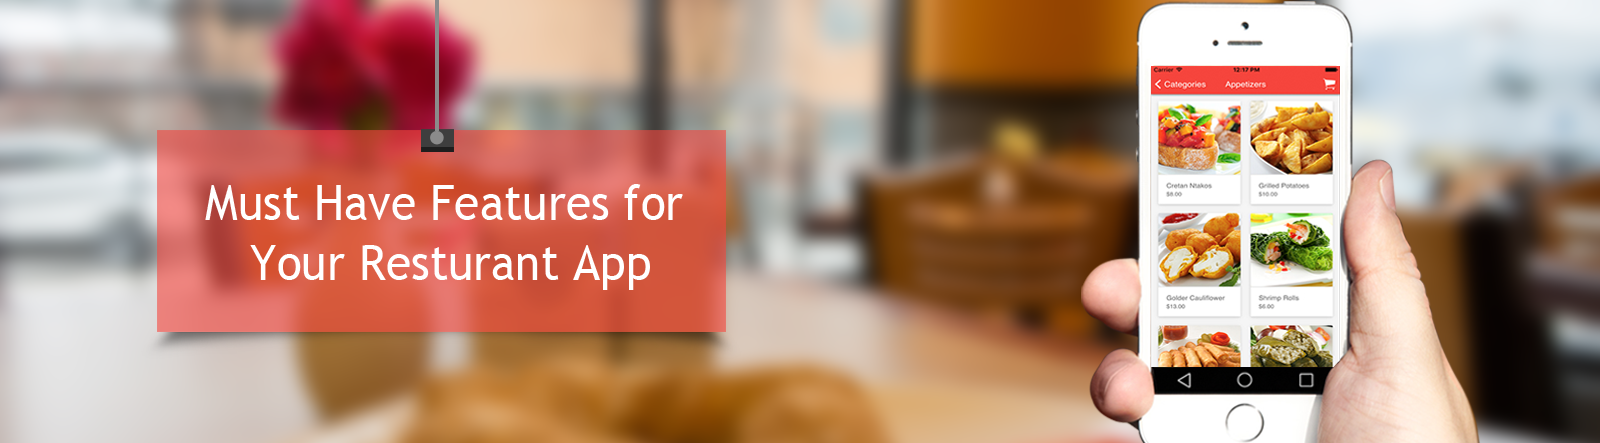 Essential Features Your Restaurant App Must Have